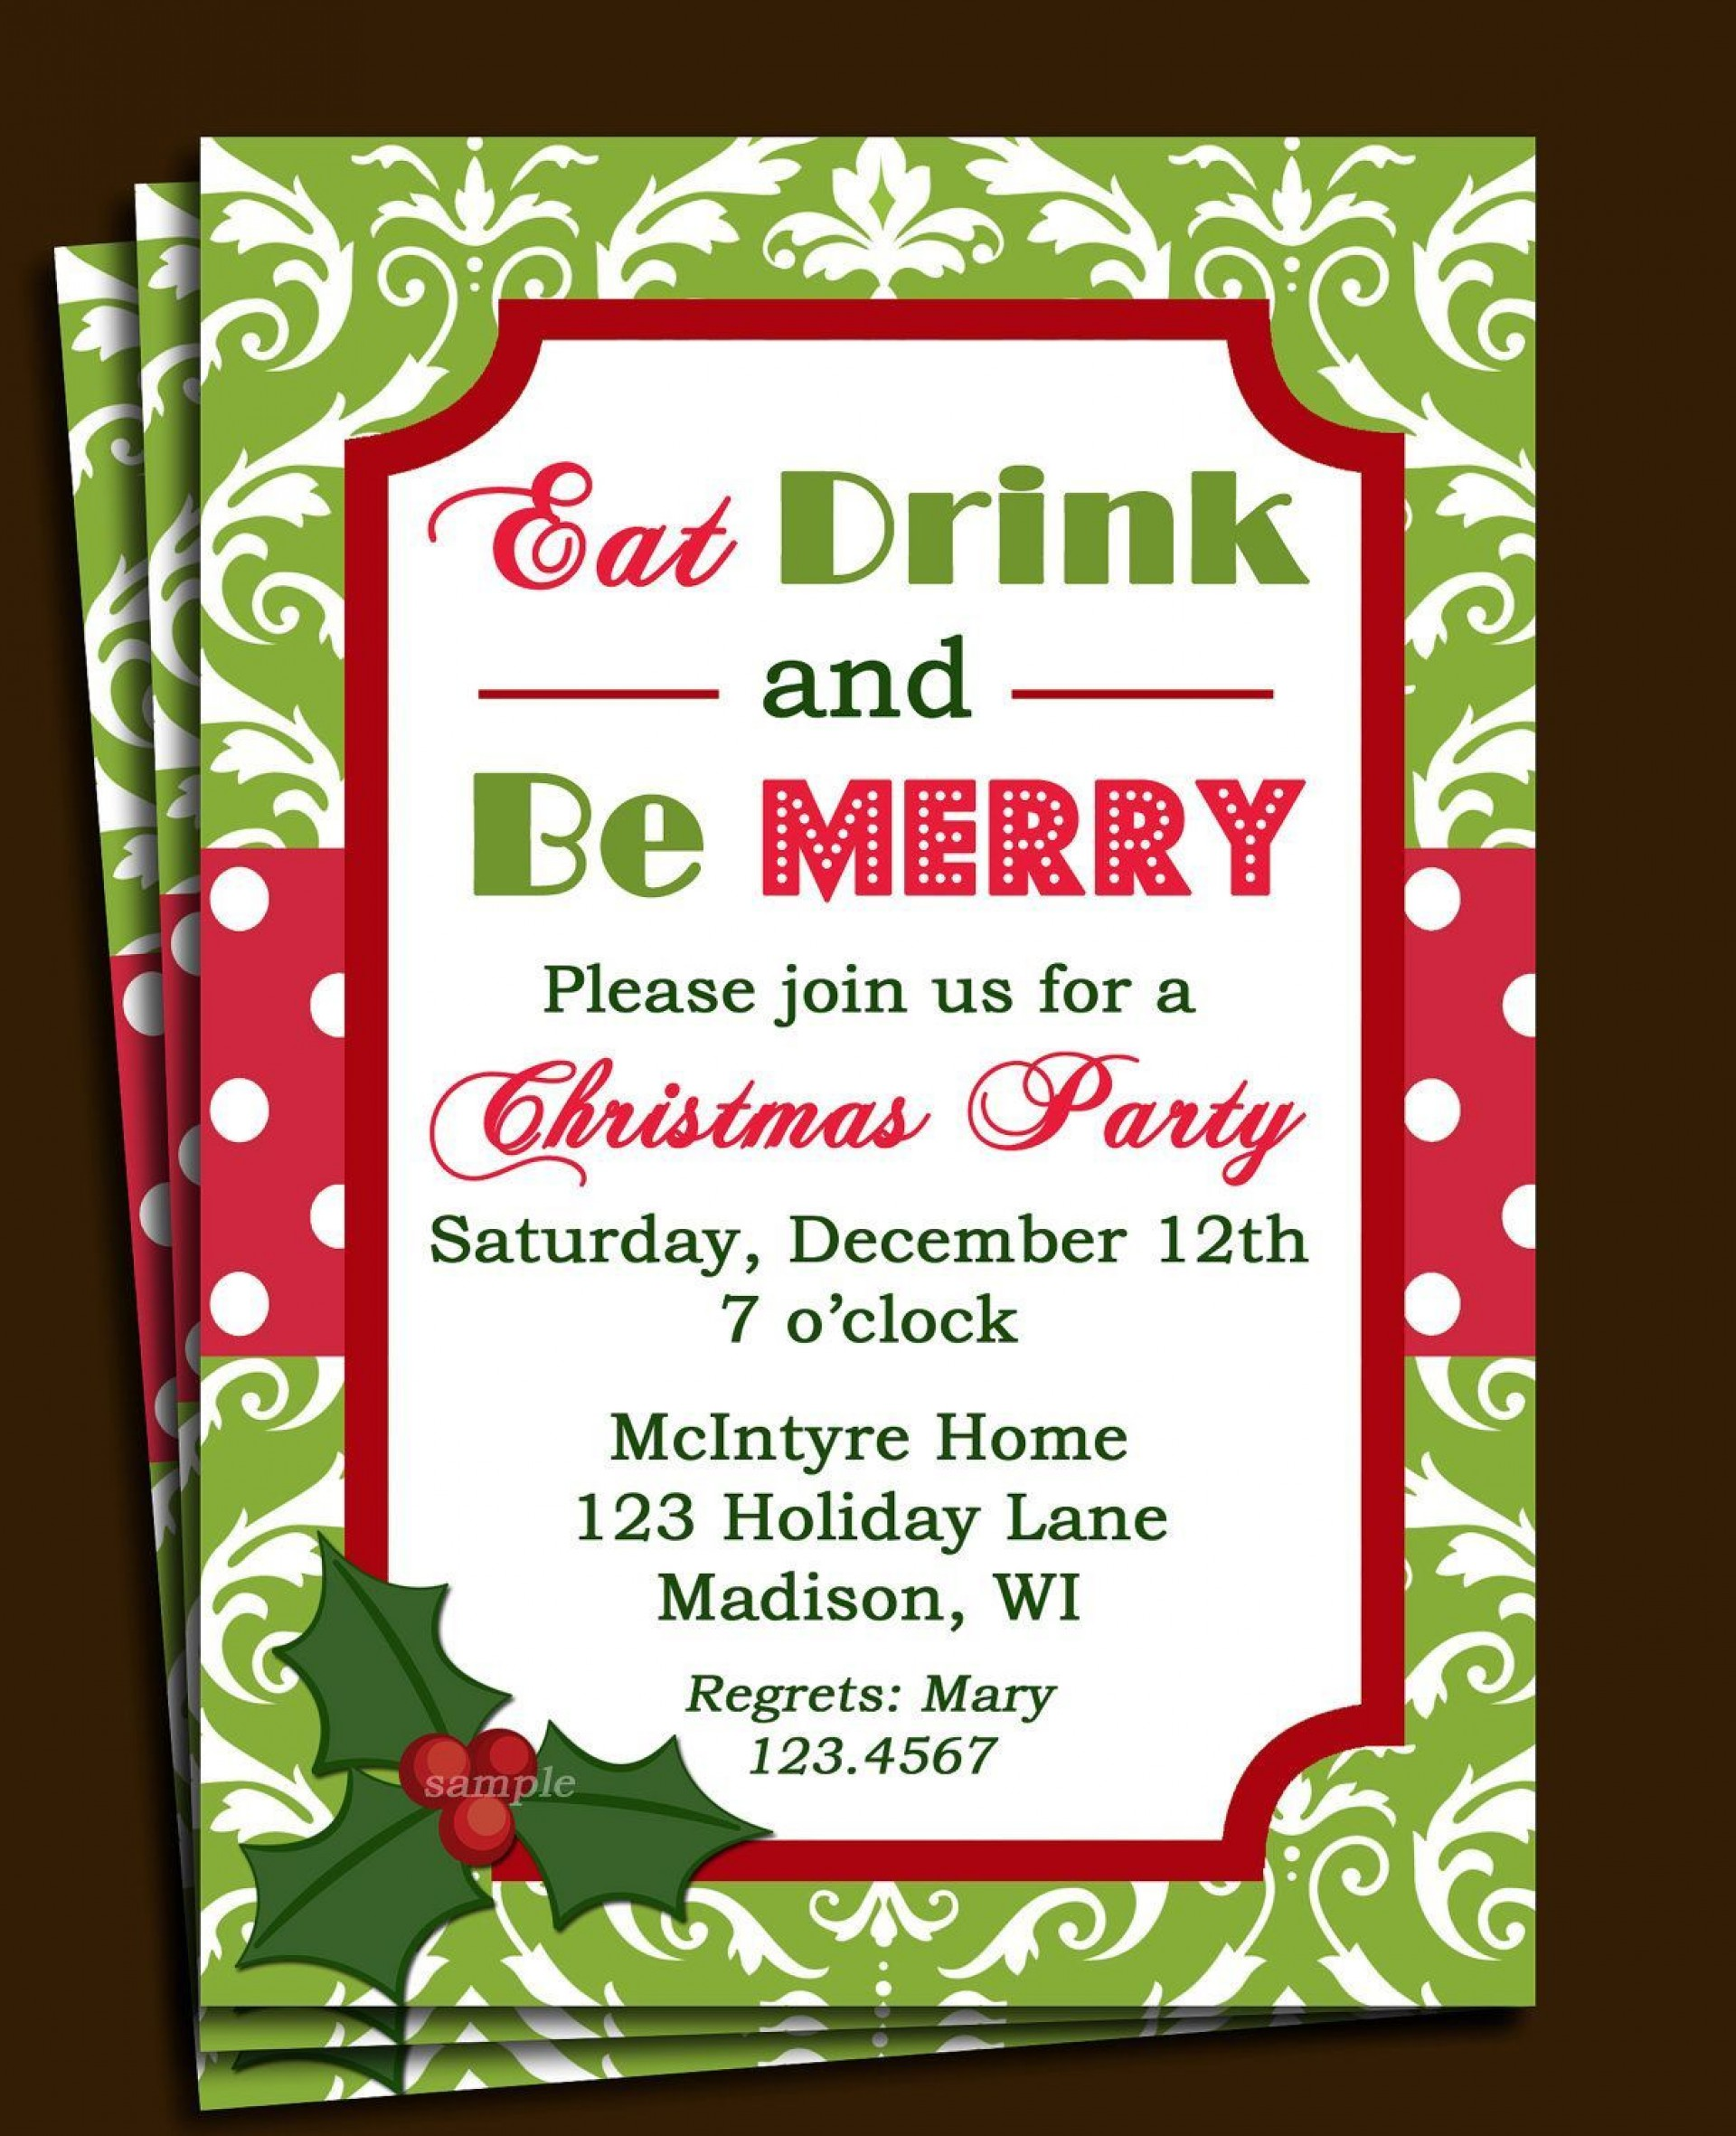 010 Sensational Holiday Party Invite Template Word Photo  Cocktail Invitation Wording Sample Microsoft Christma1920